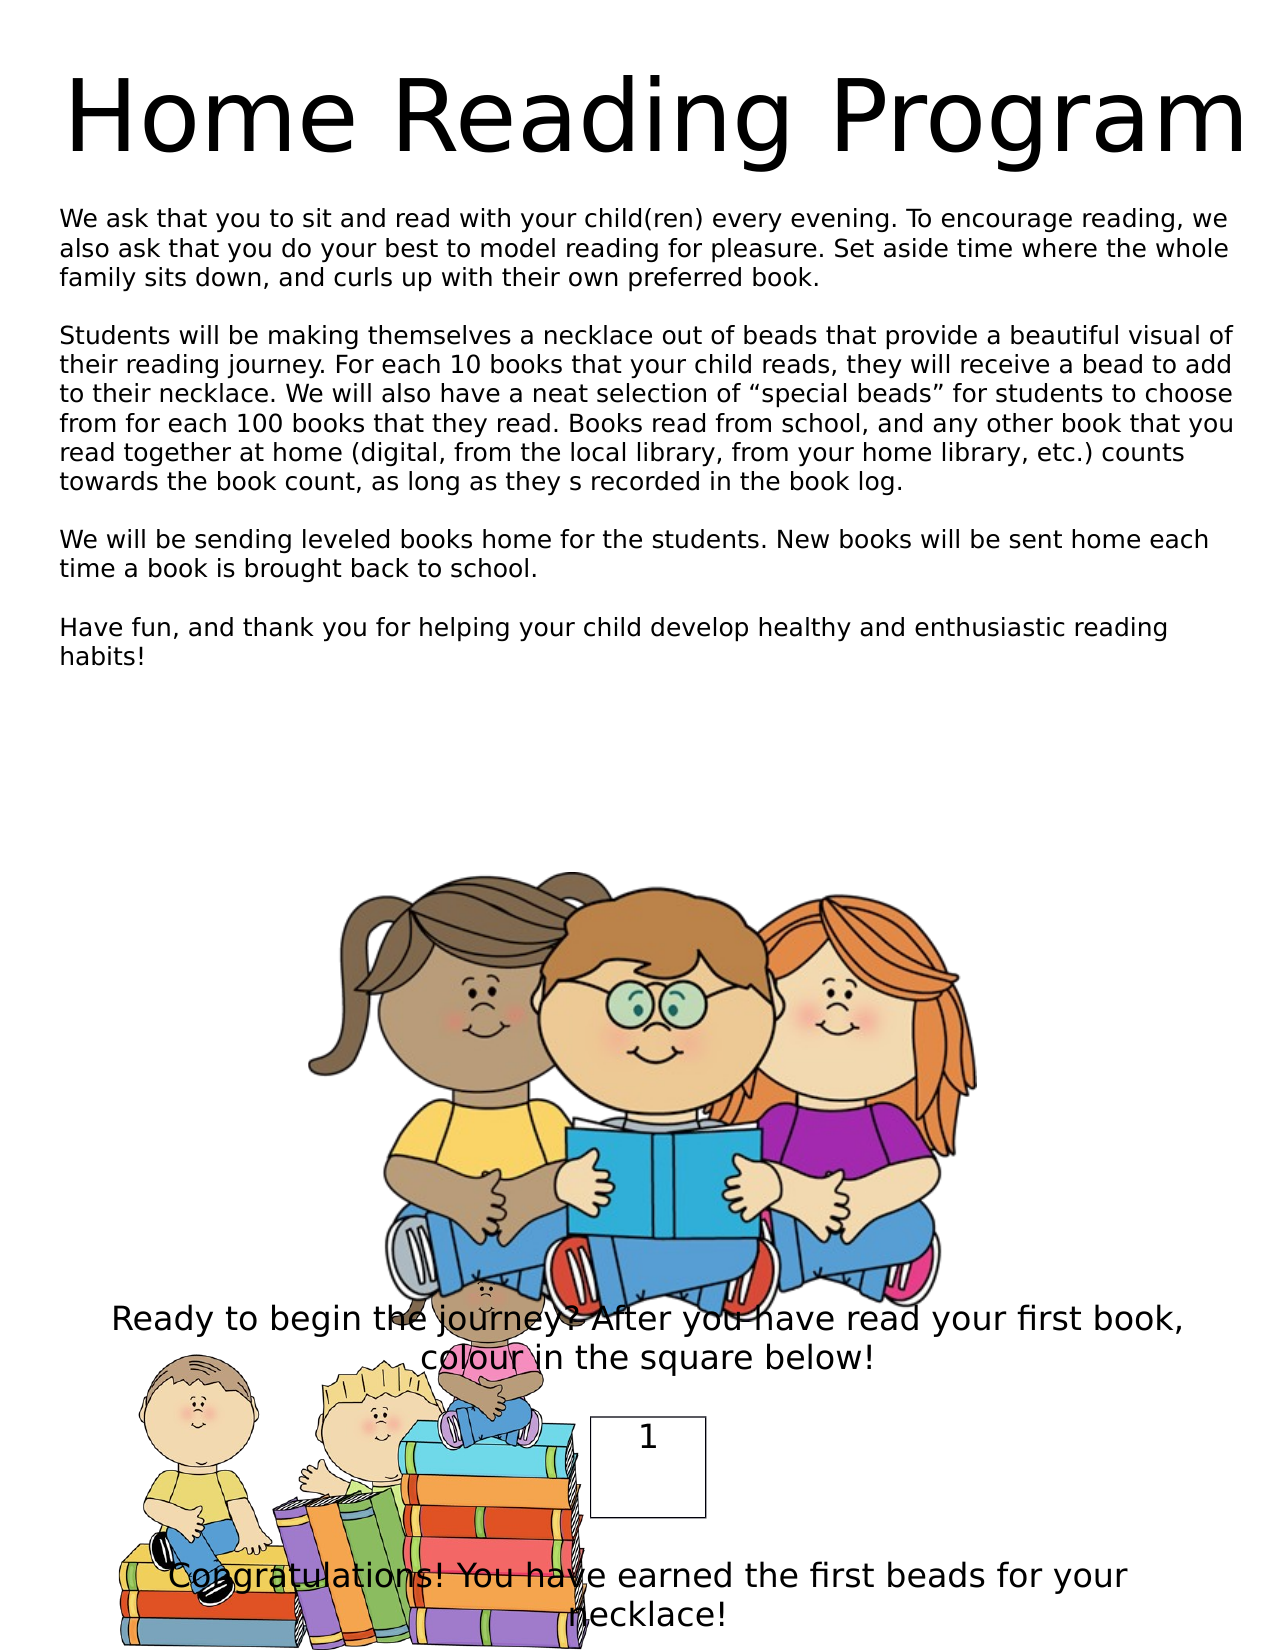 Books and Beads Home Reading Program Resource Preview